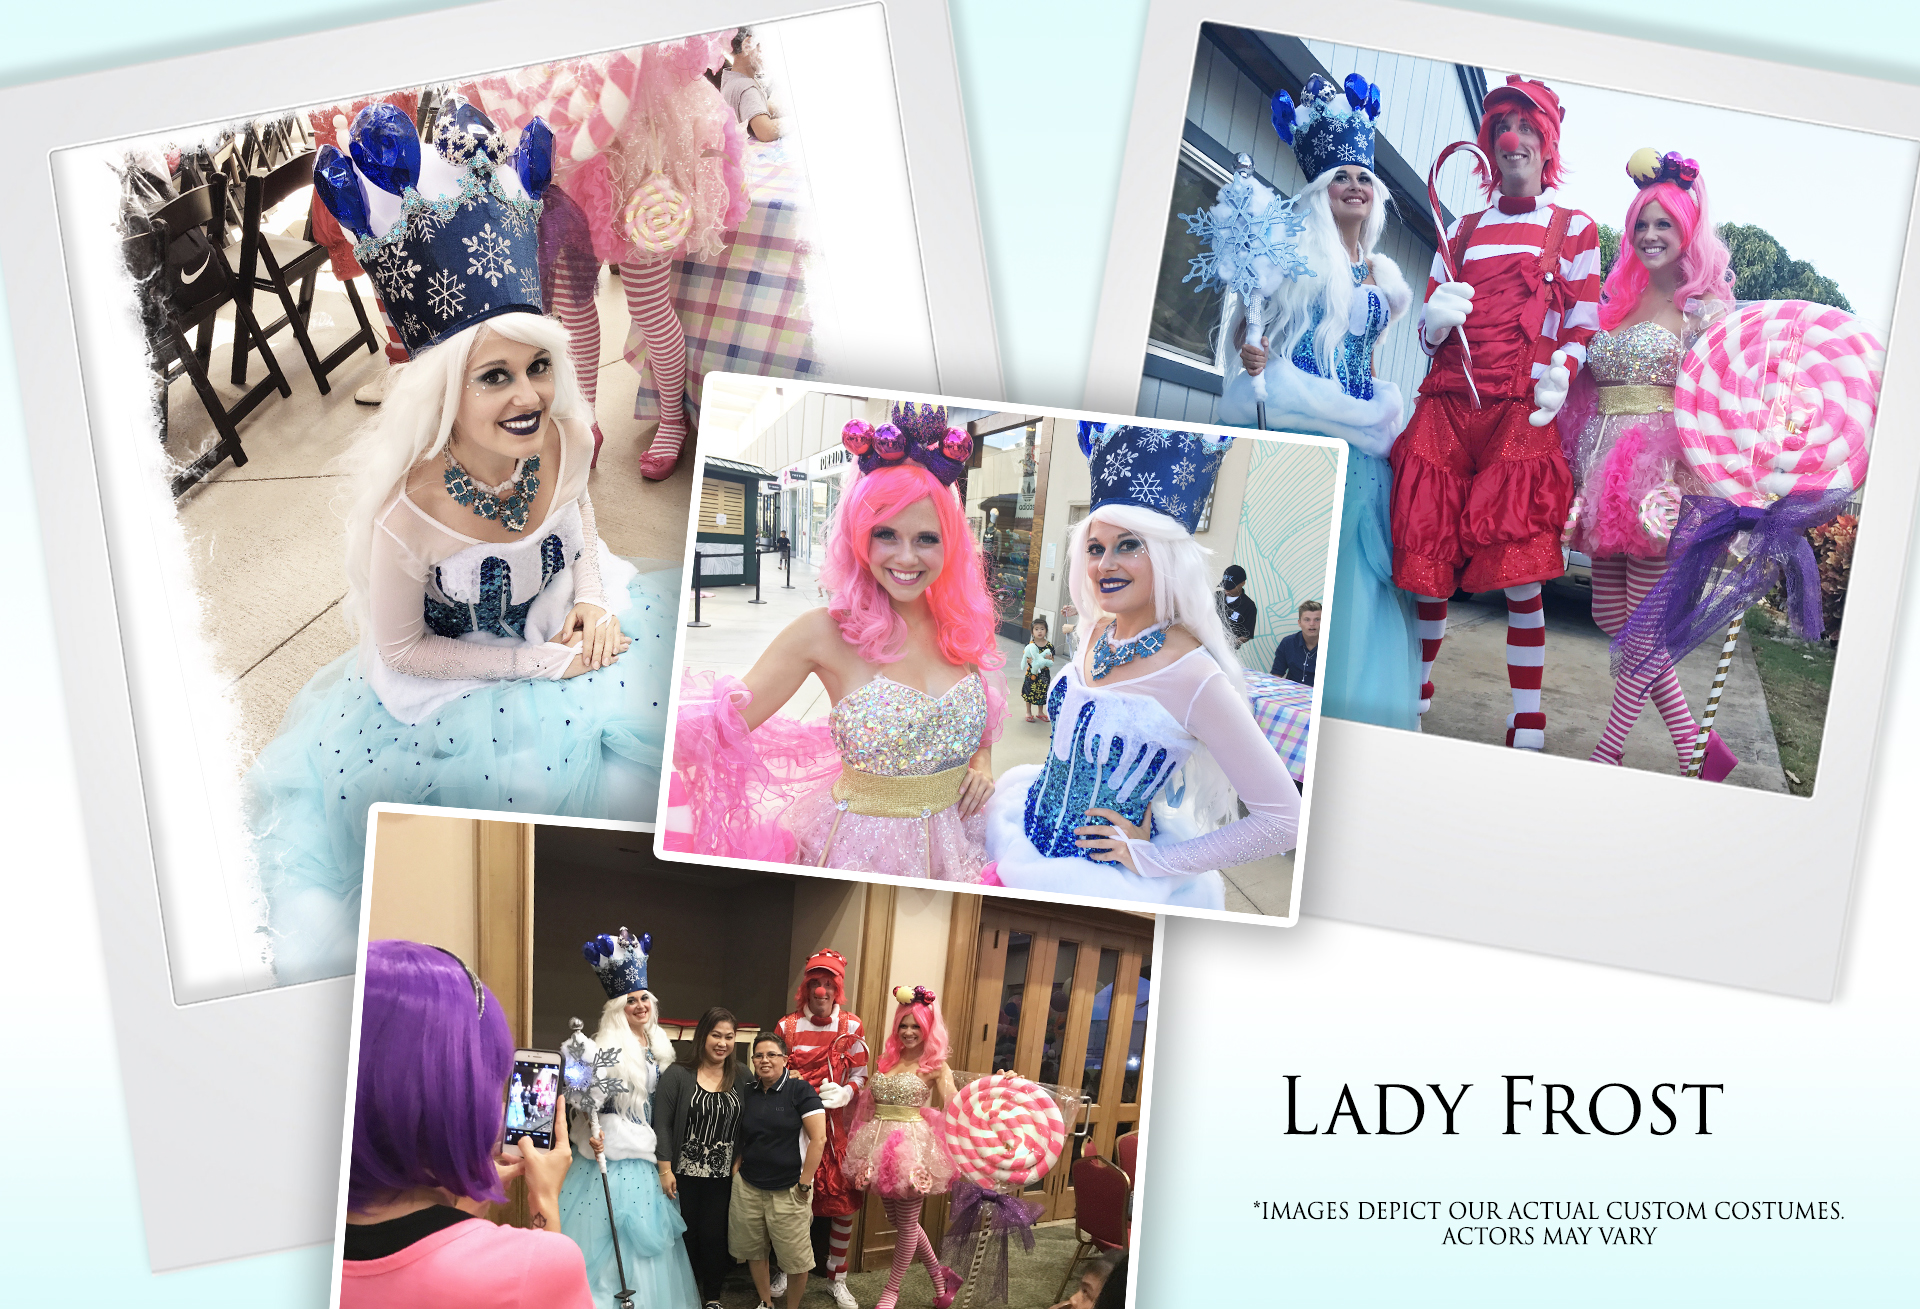 Lady Frost